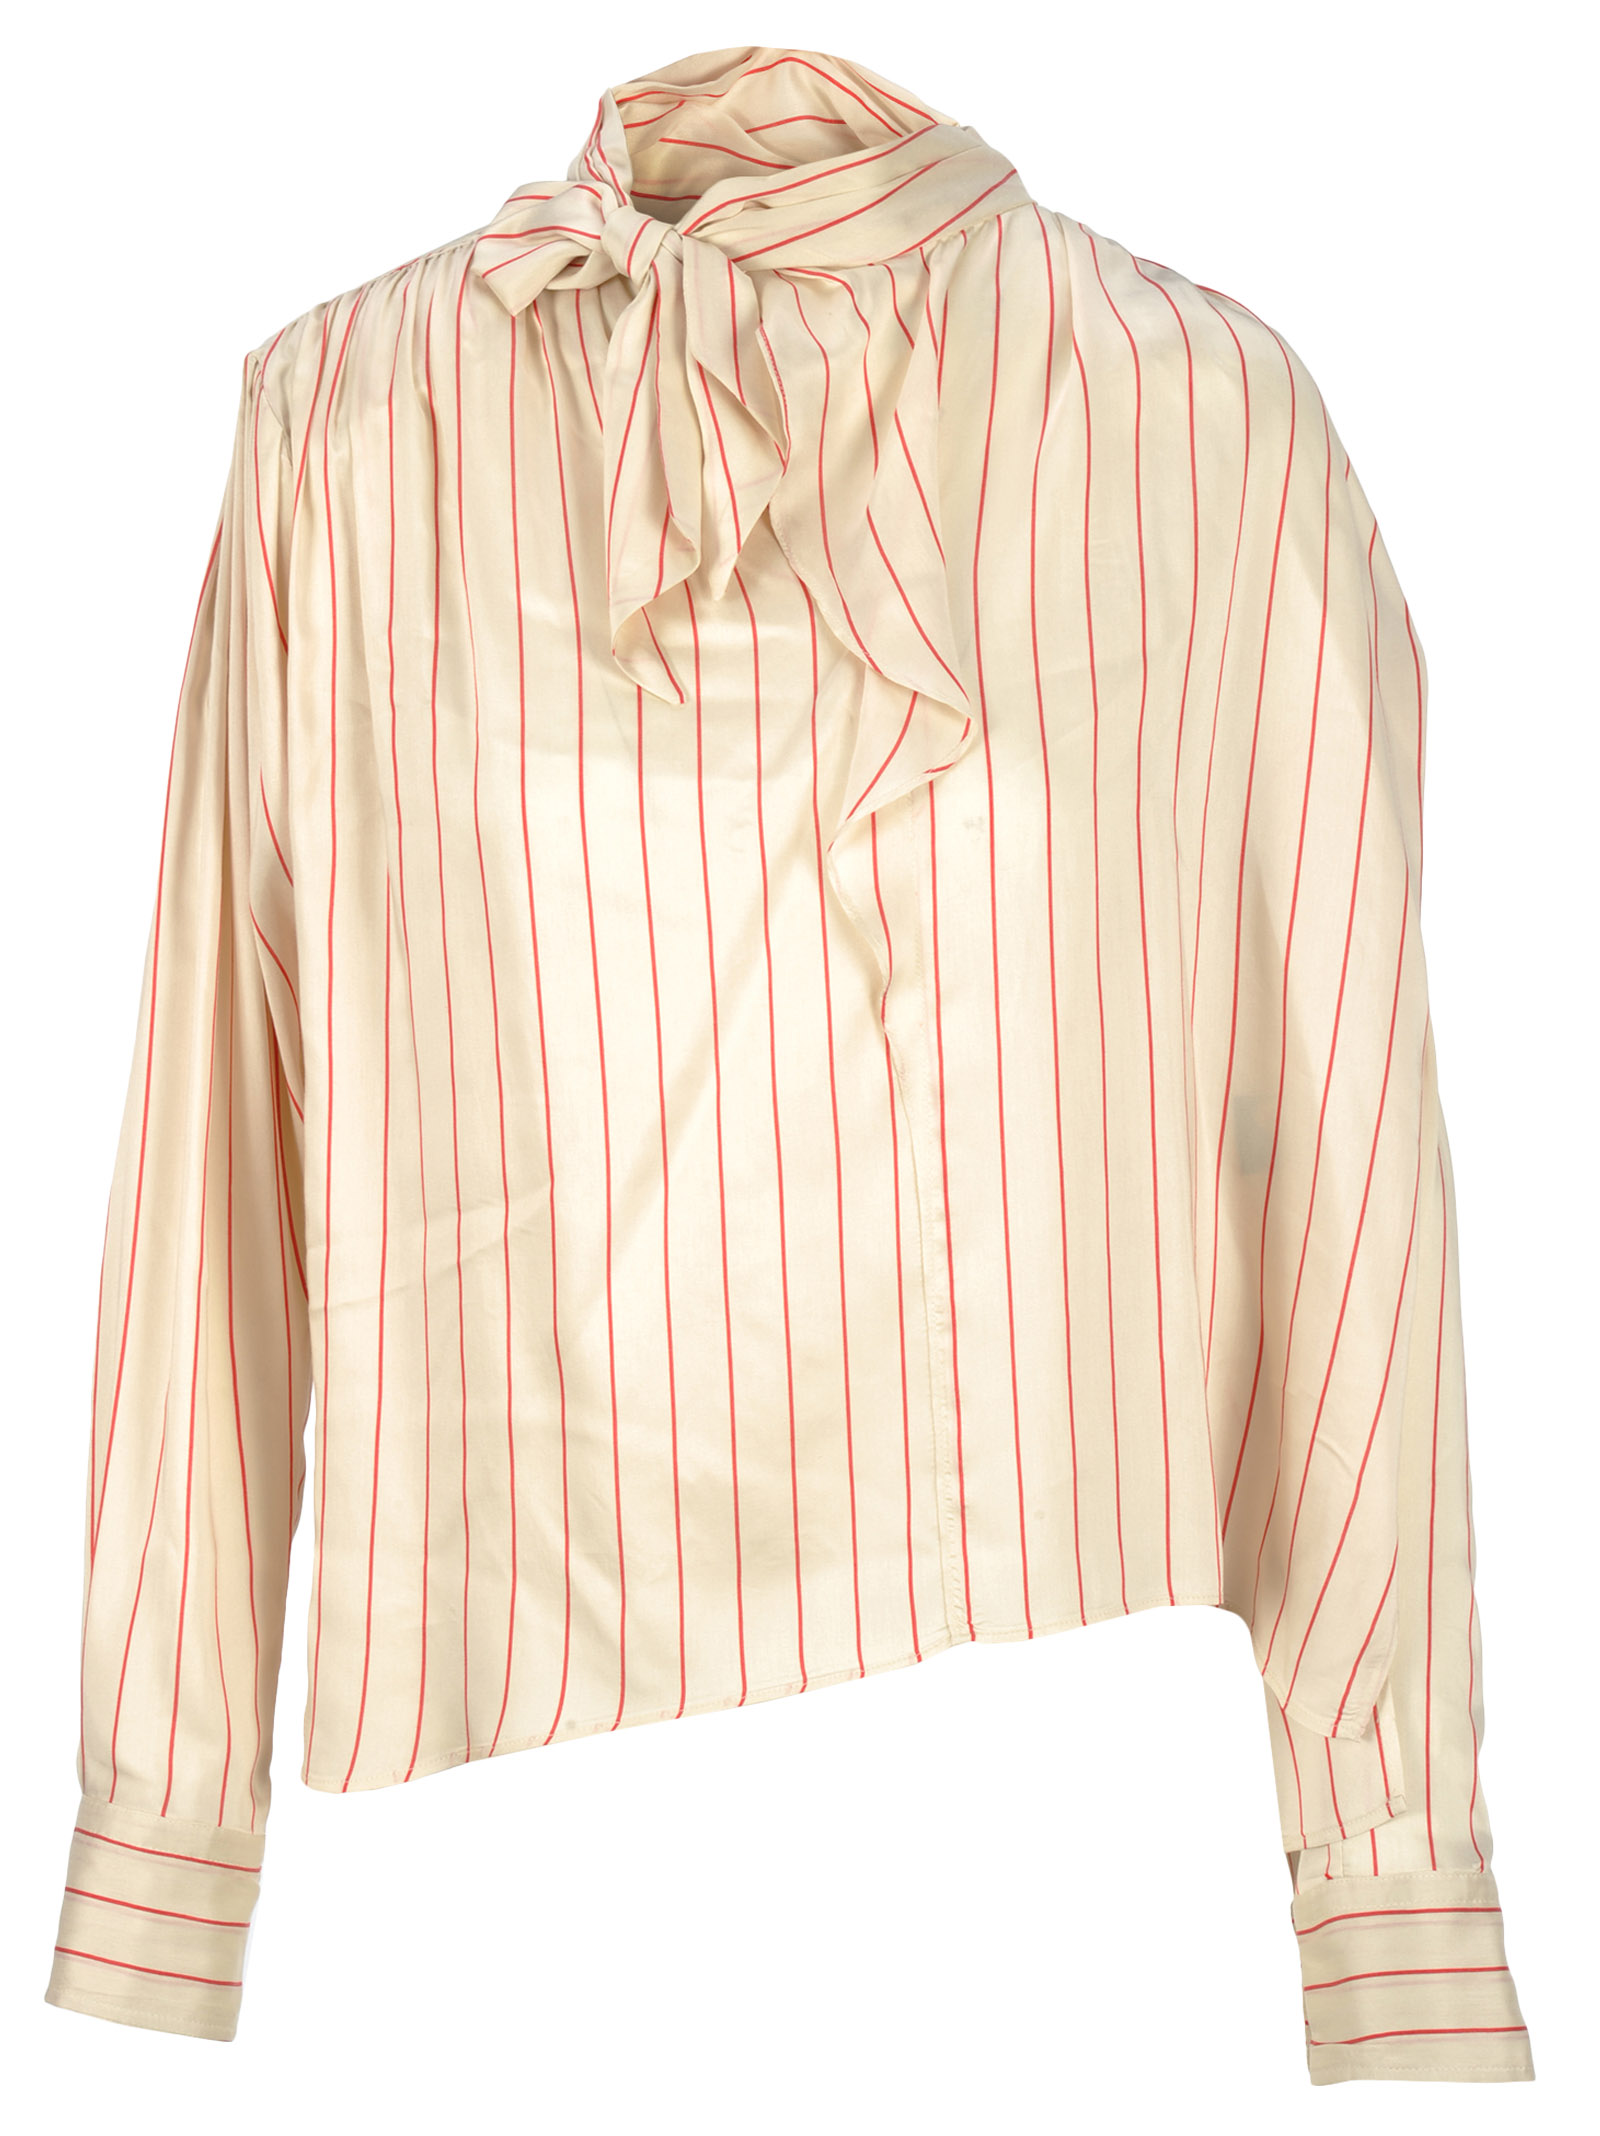 4c4bdcbd4b Details about Isabel Marant Women s Clothing Shirts - BS000319P019I